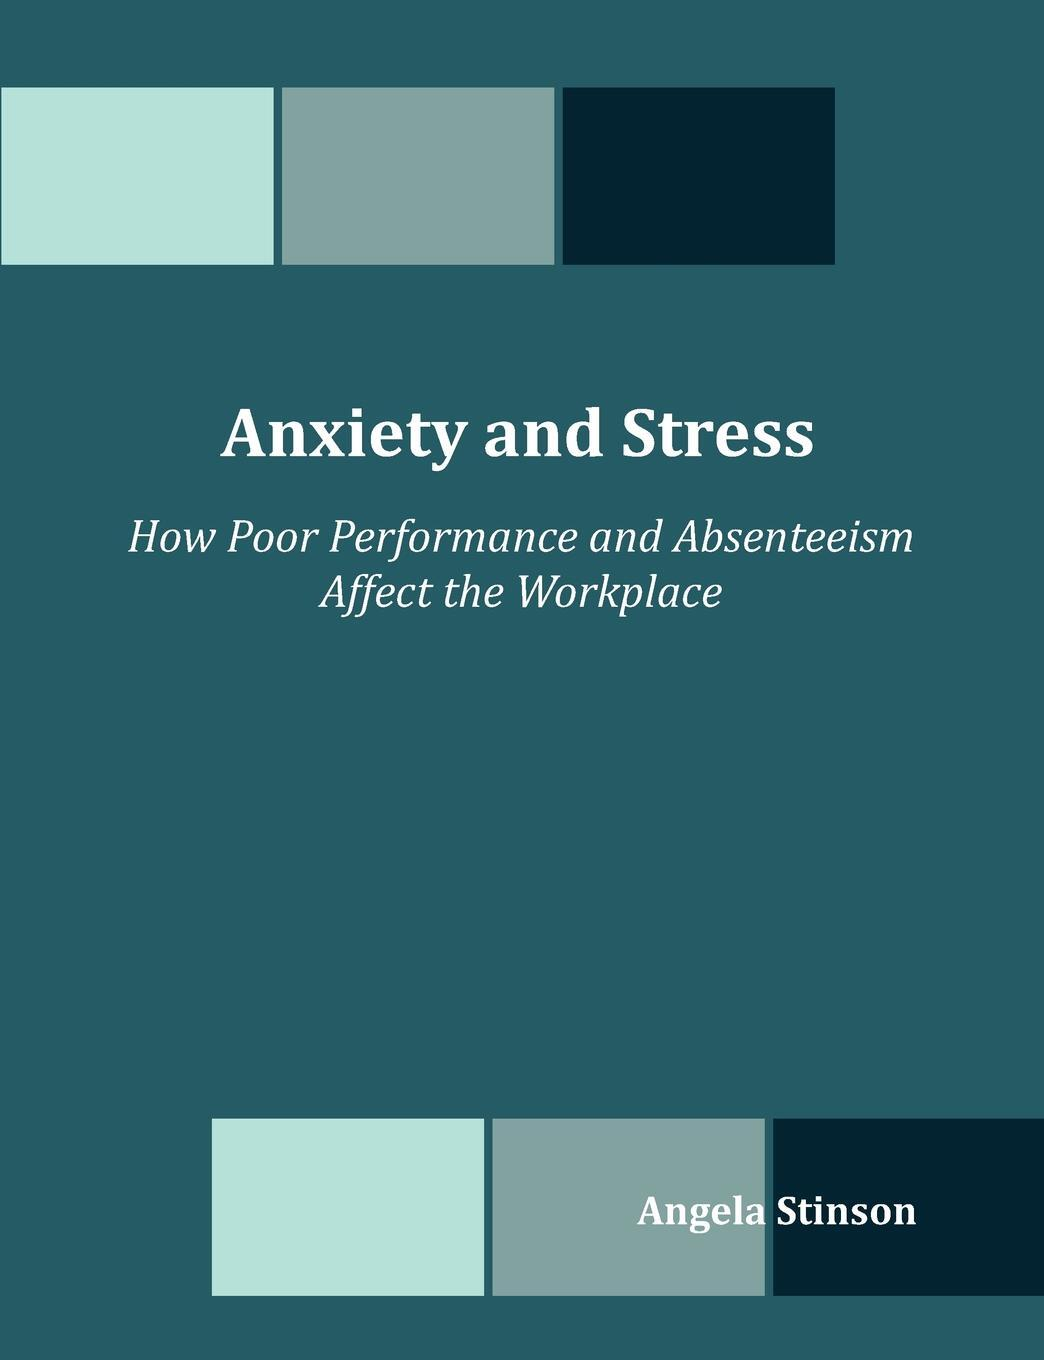 Anxiety and Stress. How Poor Performance and Absenteeism Affect the Workplace